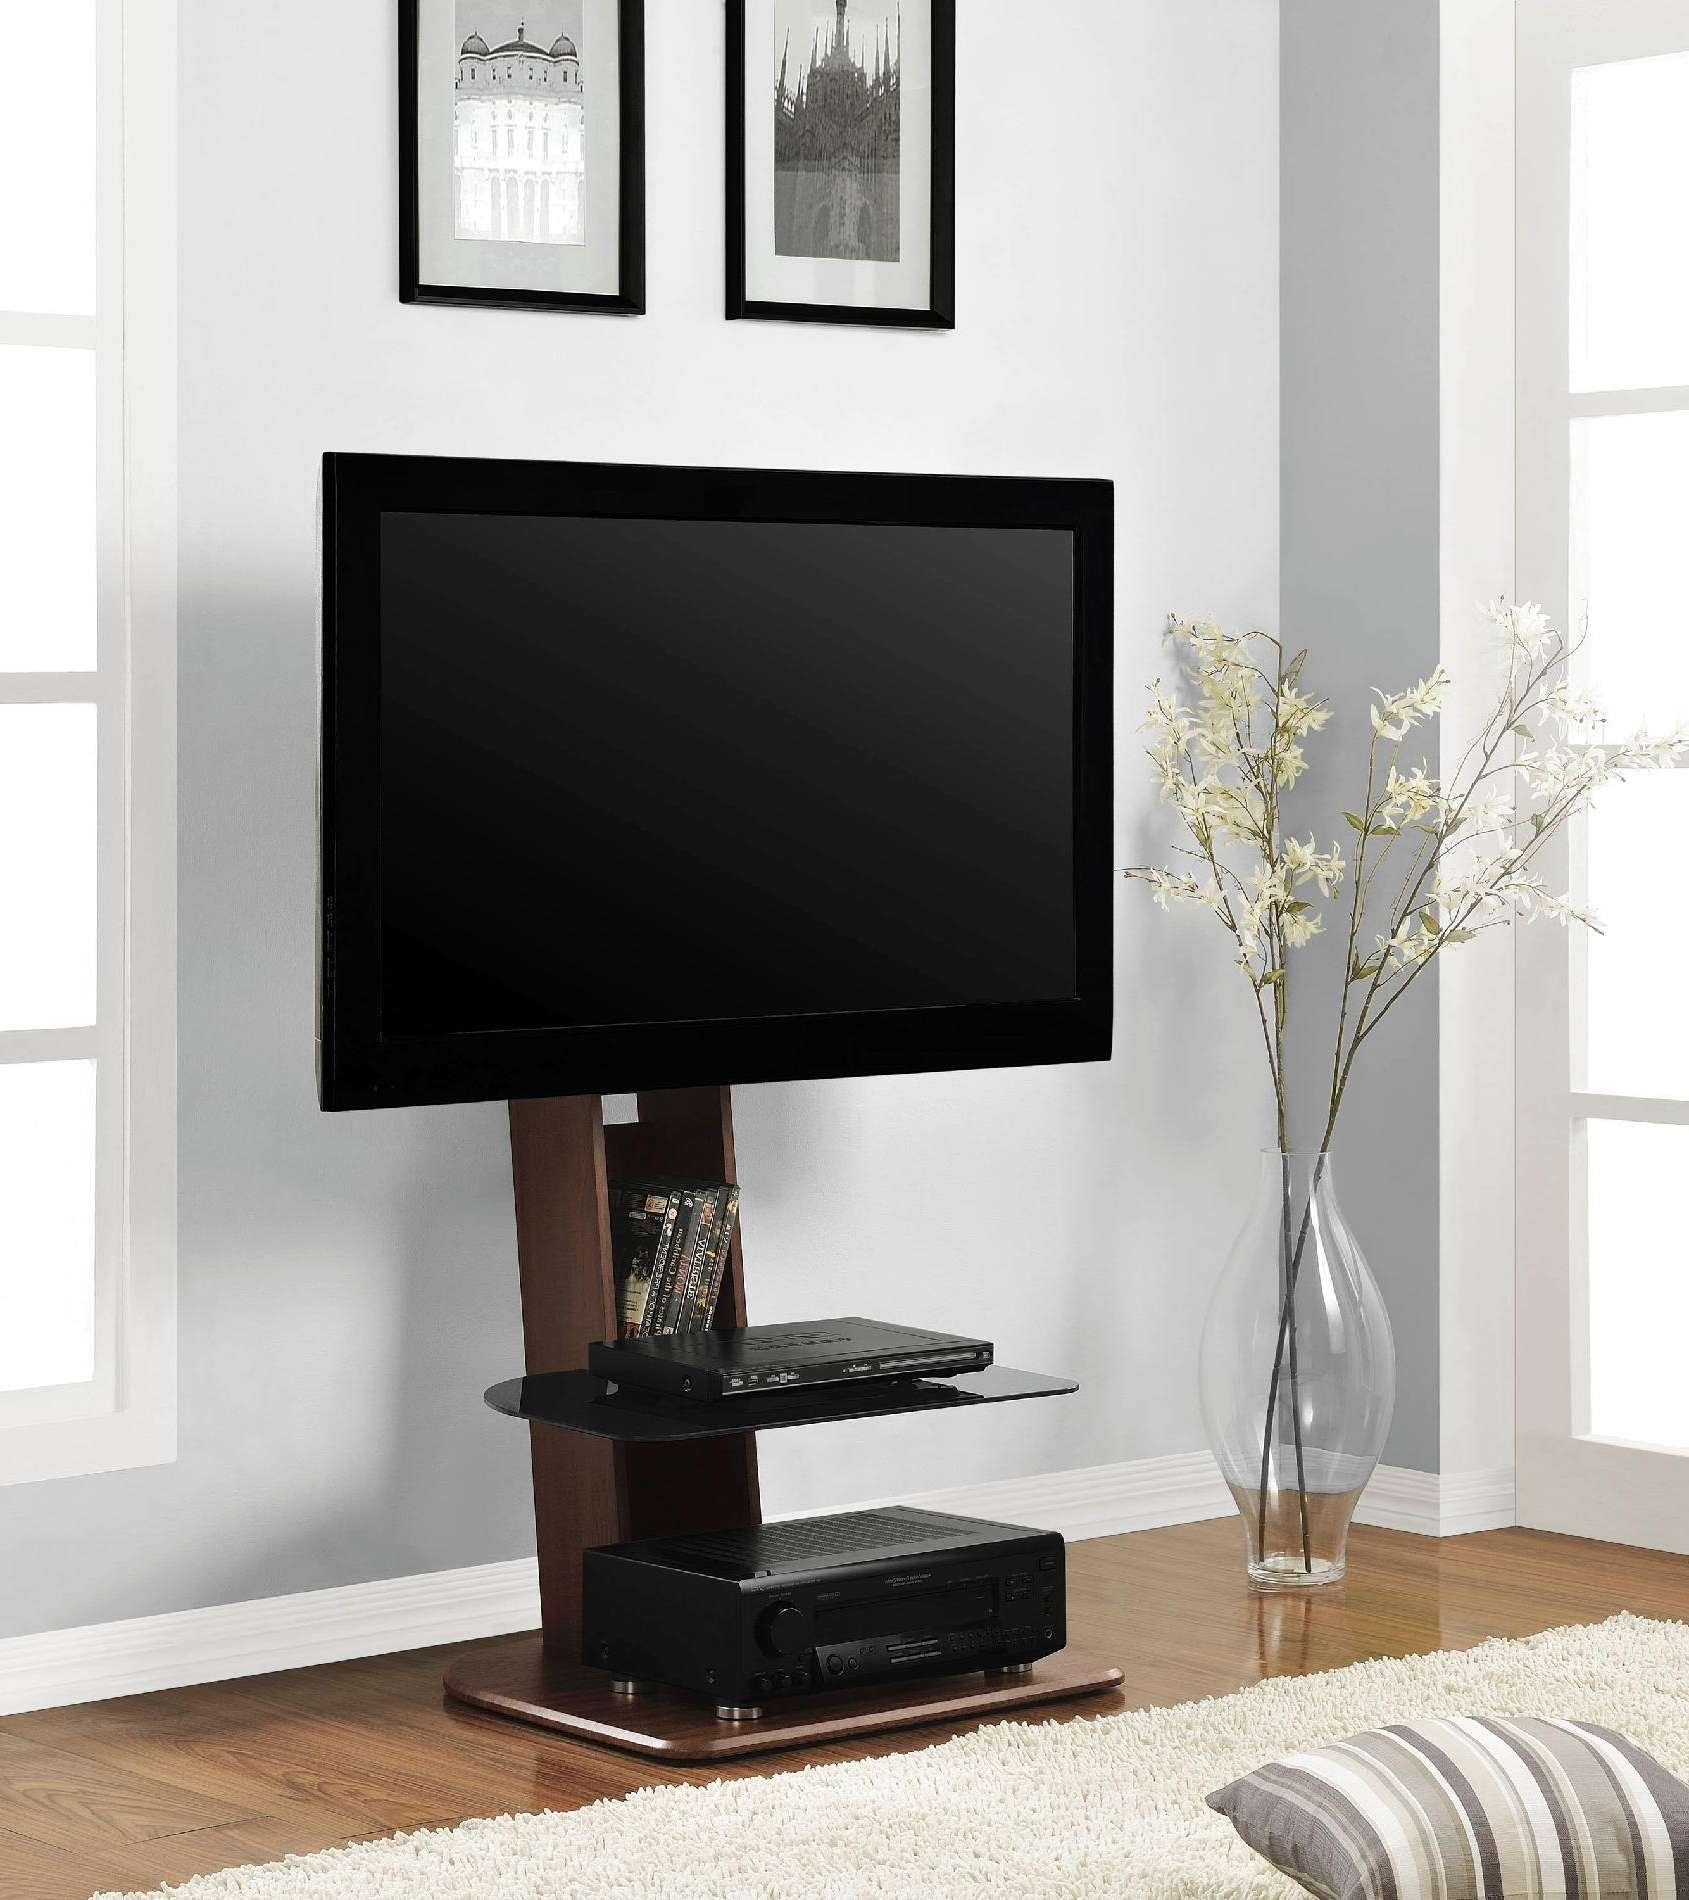 Startling Mount Discount Tv Stands Wall Brown Carpet Television Throughout Walnut Tv Stands For Flat Screens (View 9 of 20)